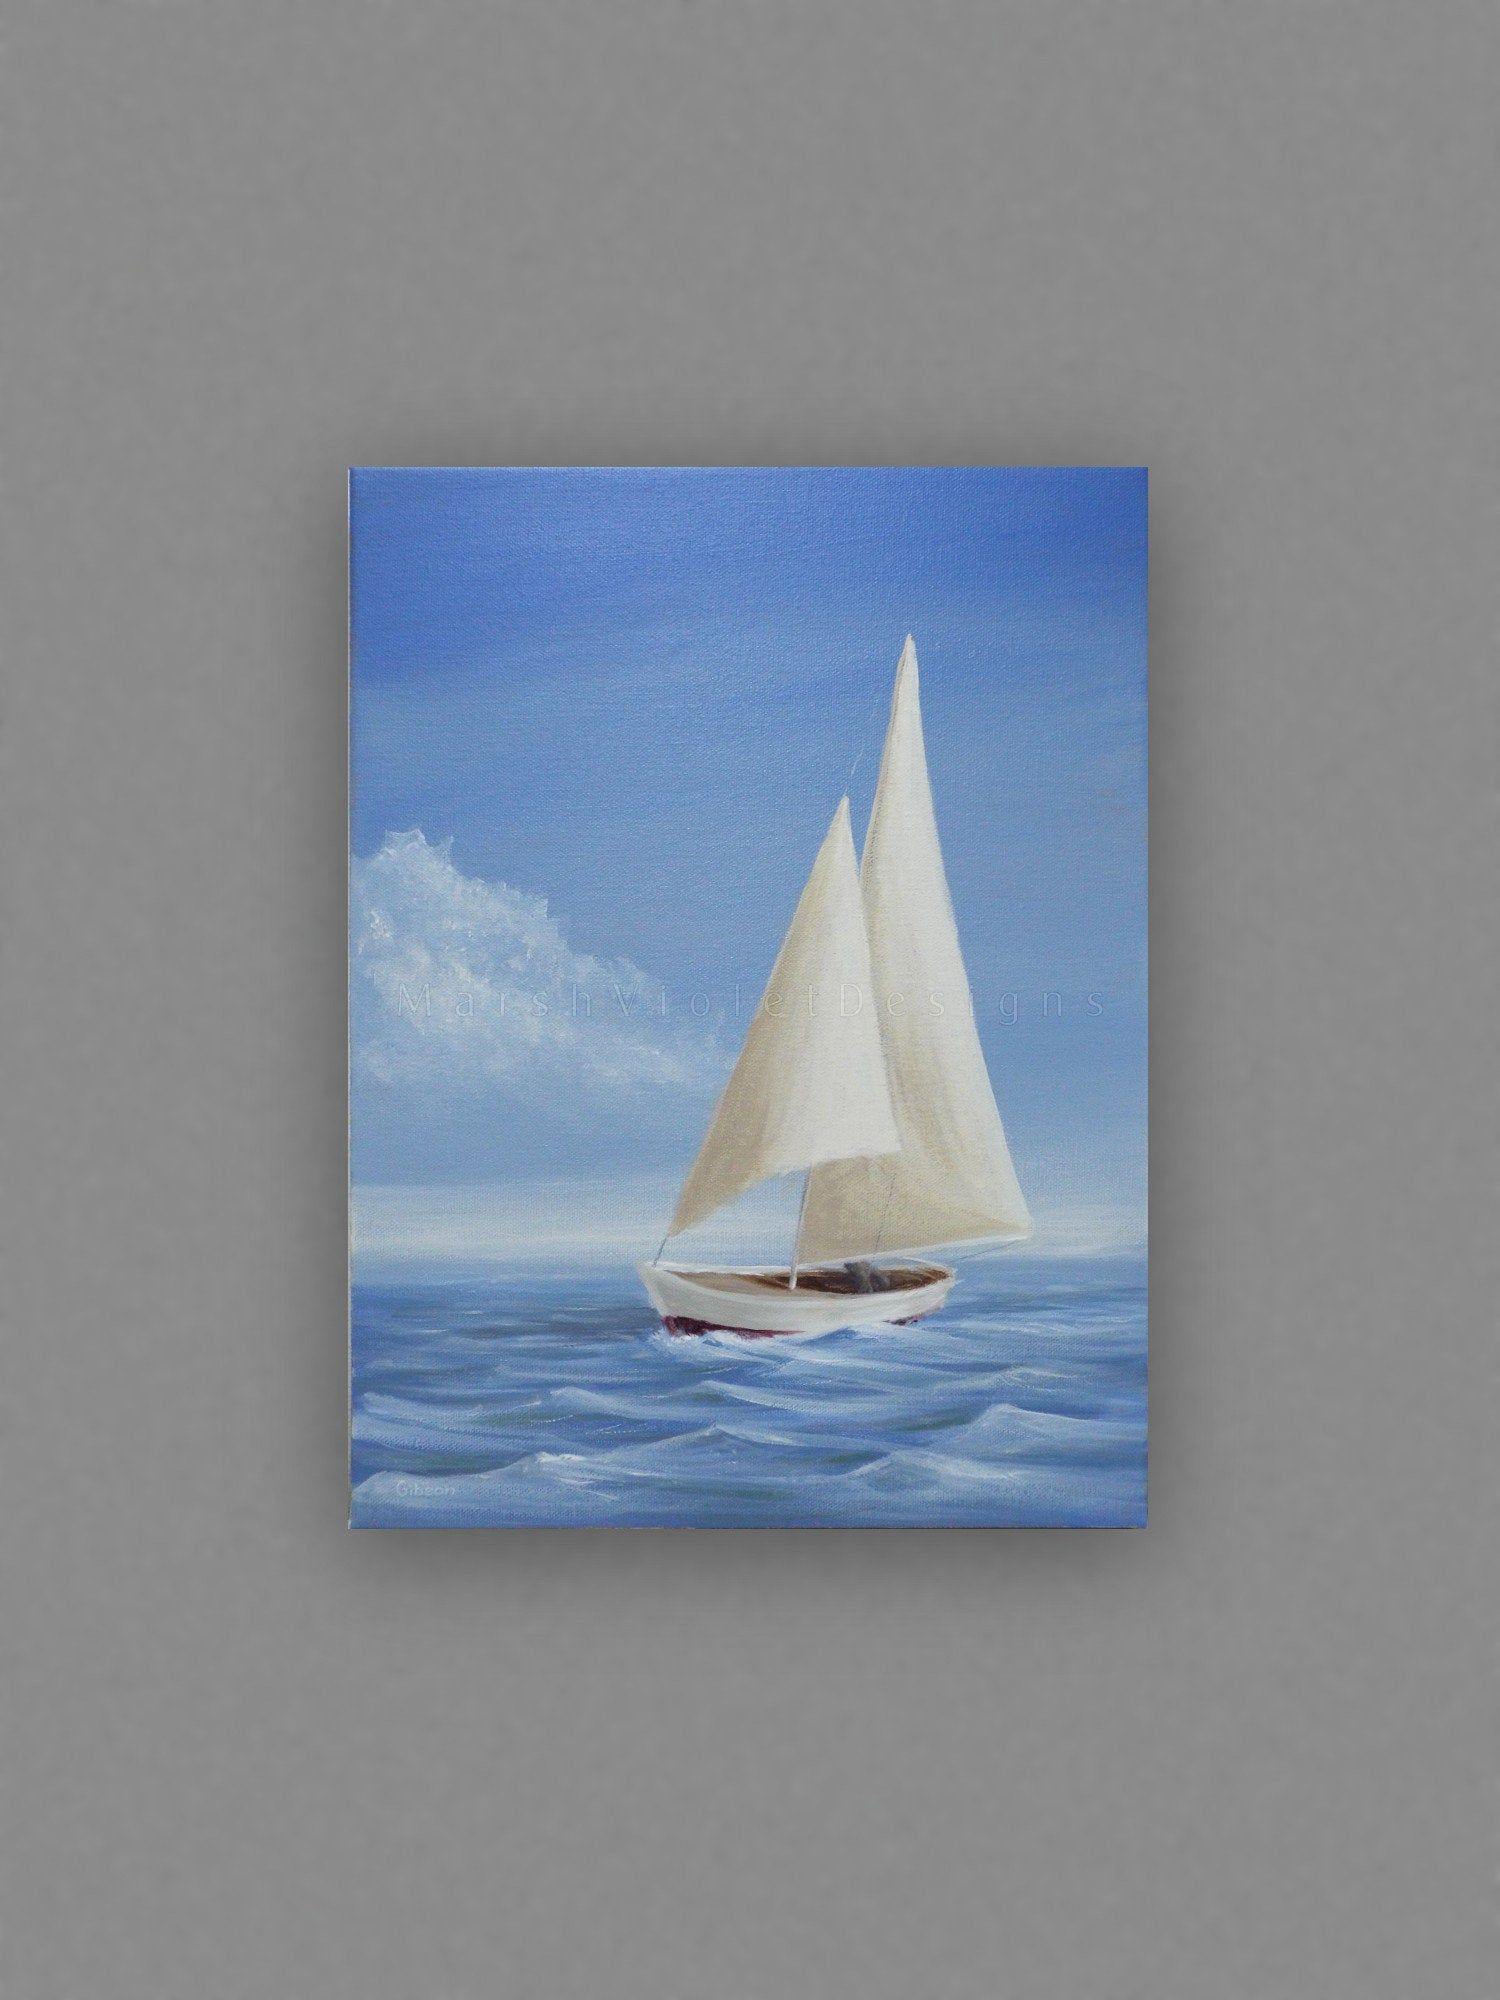 Photo of Sailboat Art, Original Painting, Nautical Decor, 12×16 inch Acrylic on Canvas, Blue White Red, Sailing, Sail Boat Ocean, Coastal Beach Lake